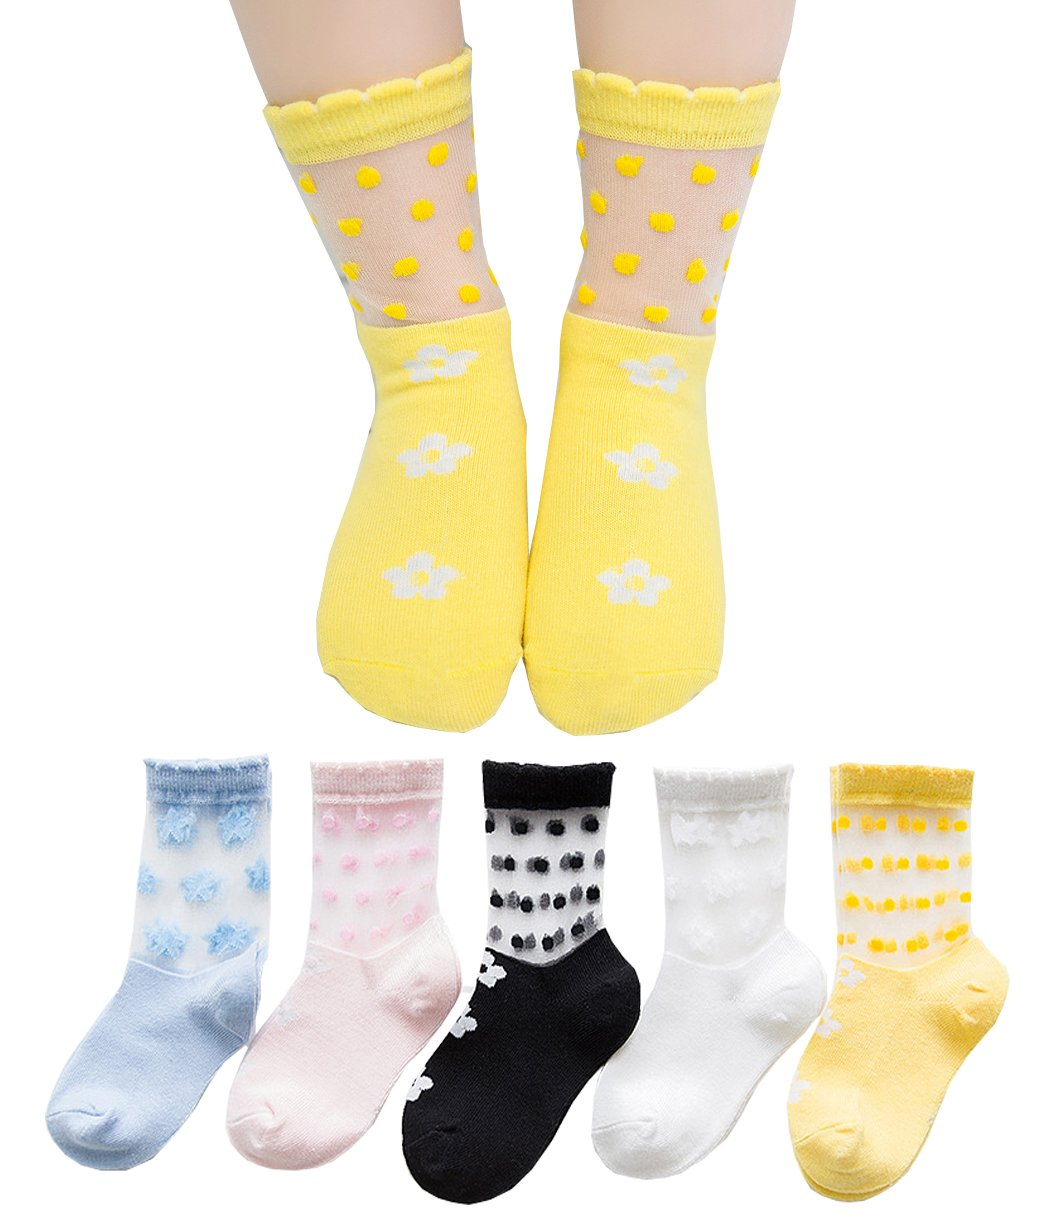 Girls' Fashion Cute Novelty Cotton Lace Transparent Thin Socks (Pack of 5) (XL, Flower)